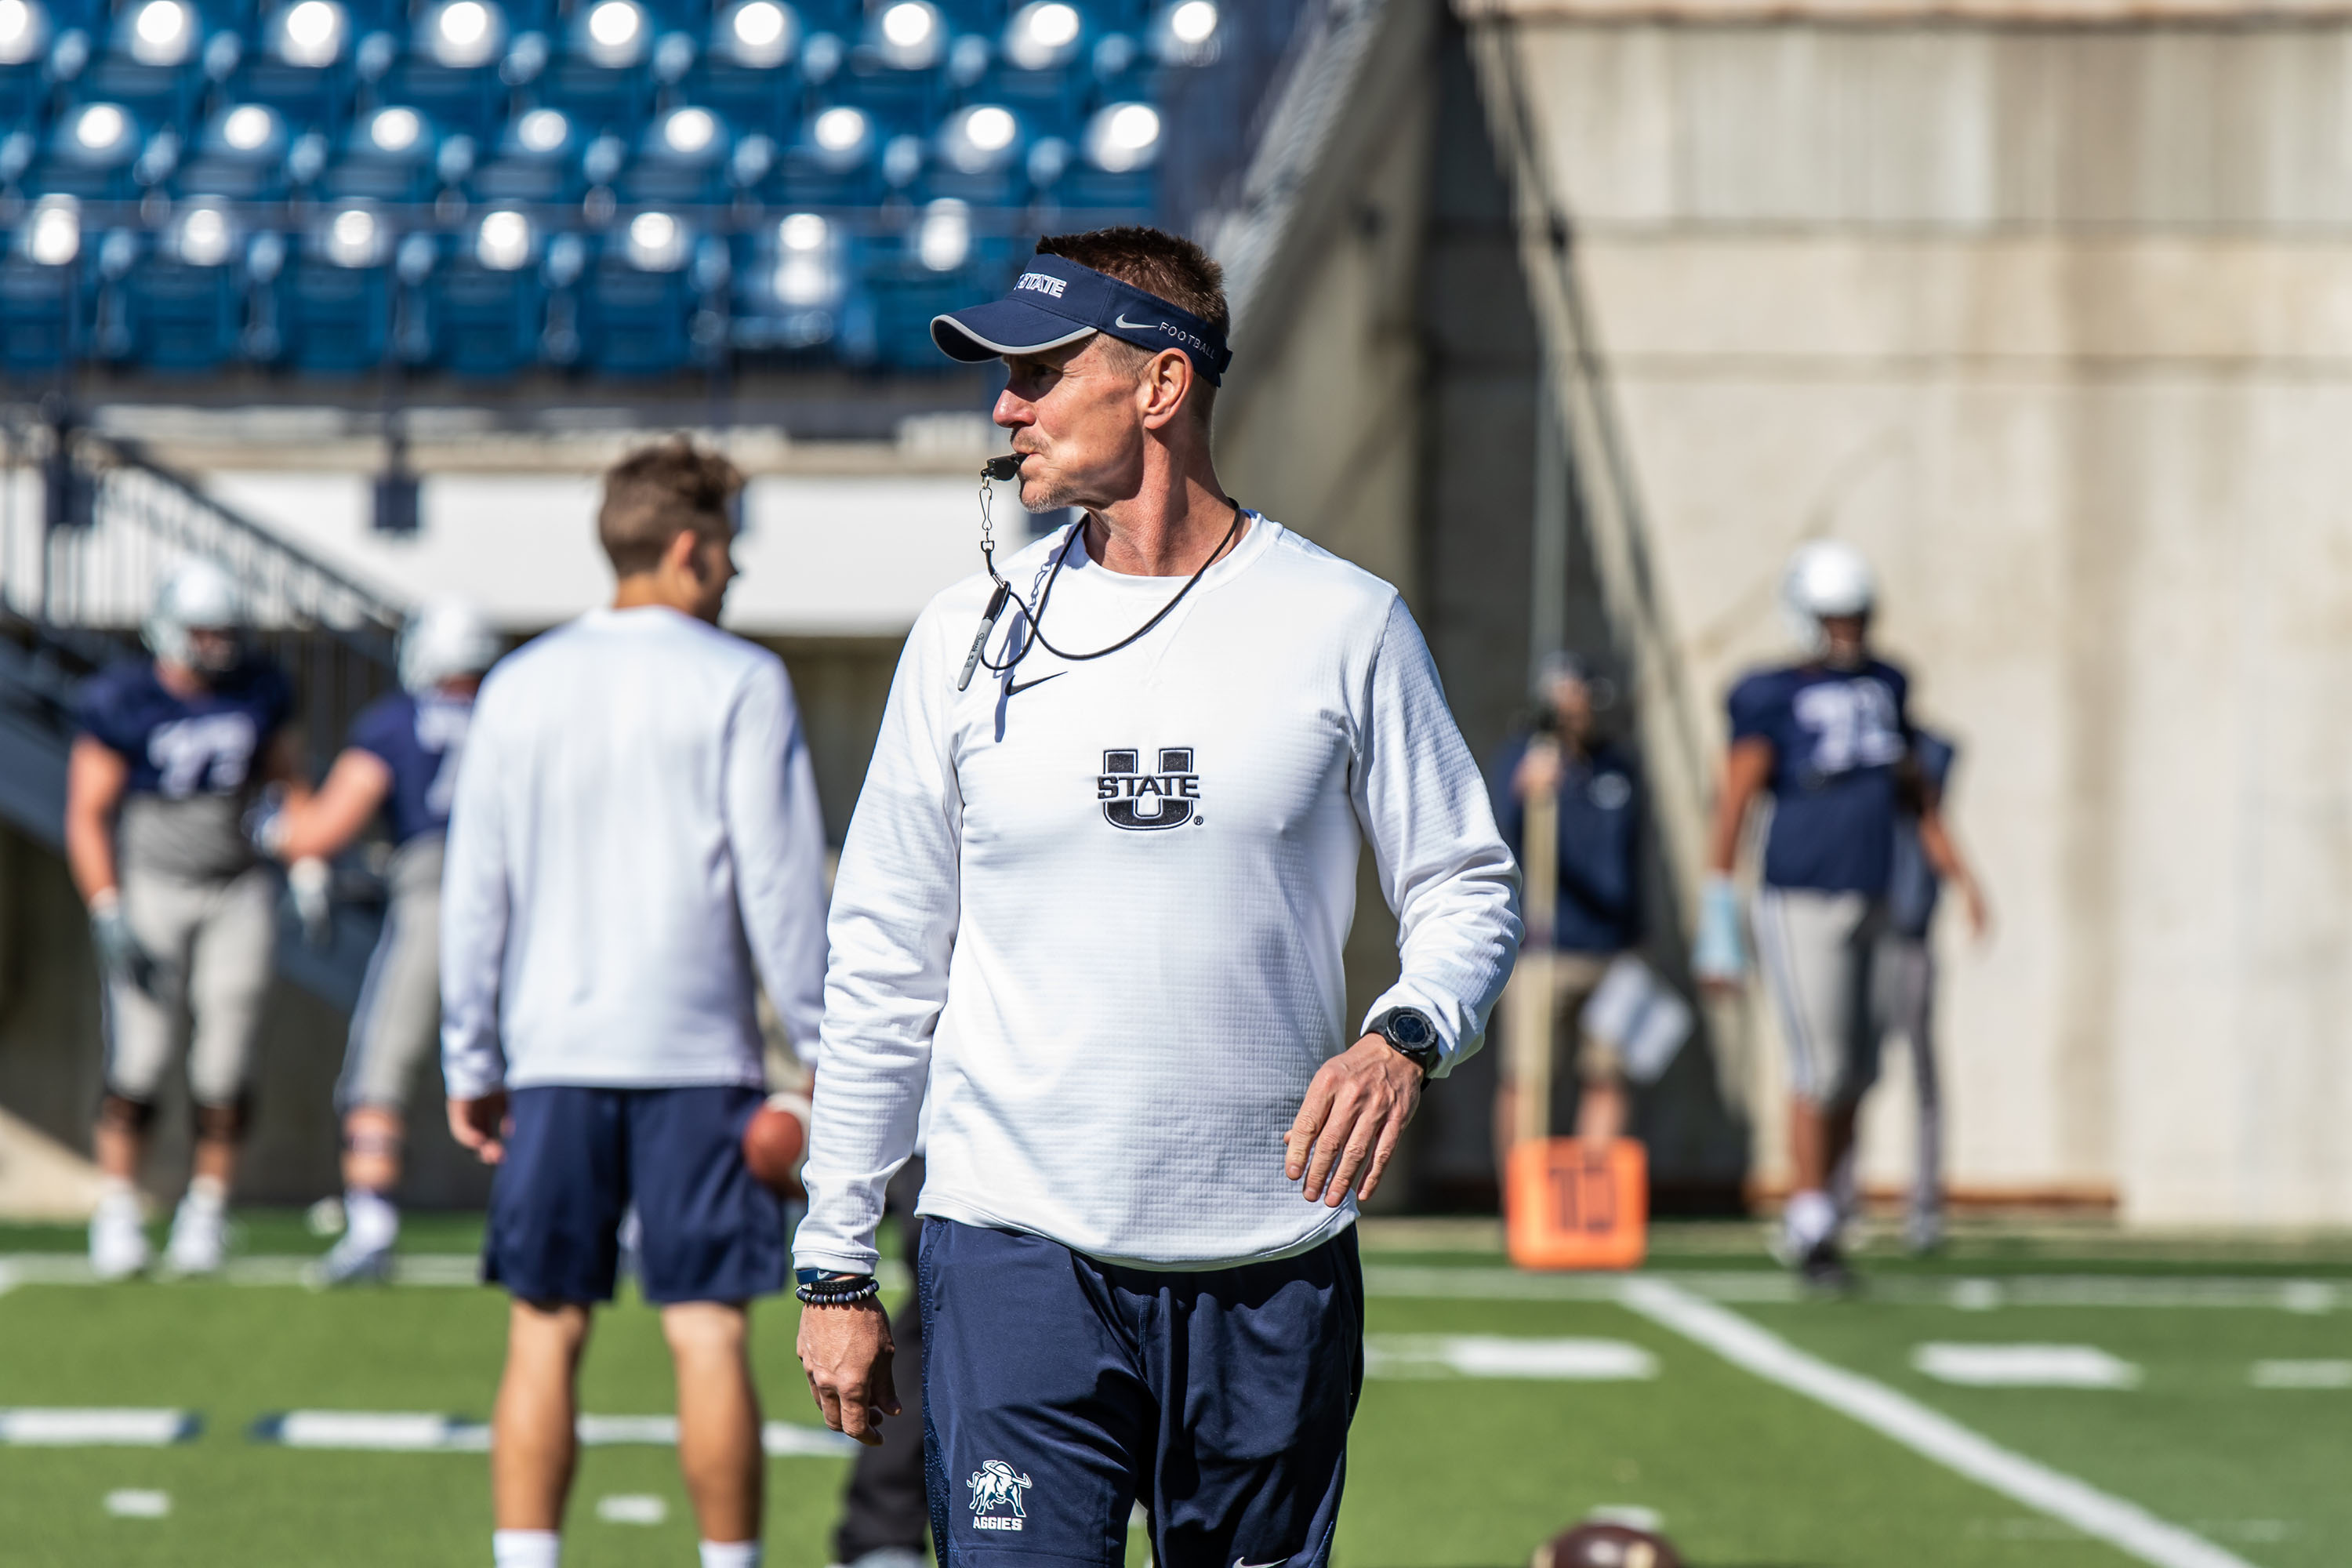 Utah State football coach Gary Andersen. shown in action during spring camp in Logan, is now joining the Weber State staff.